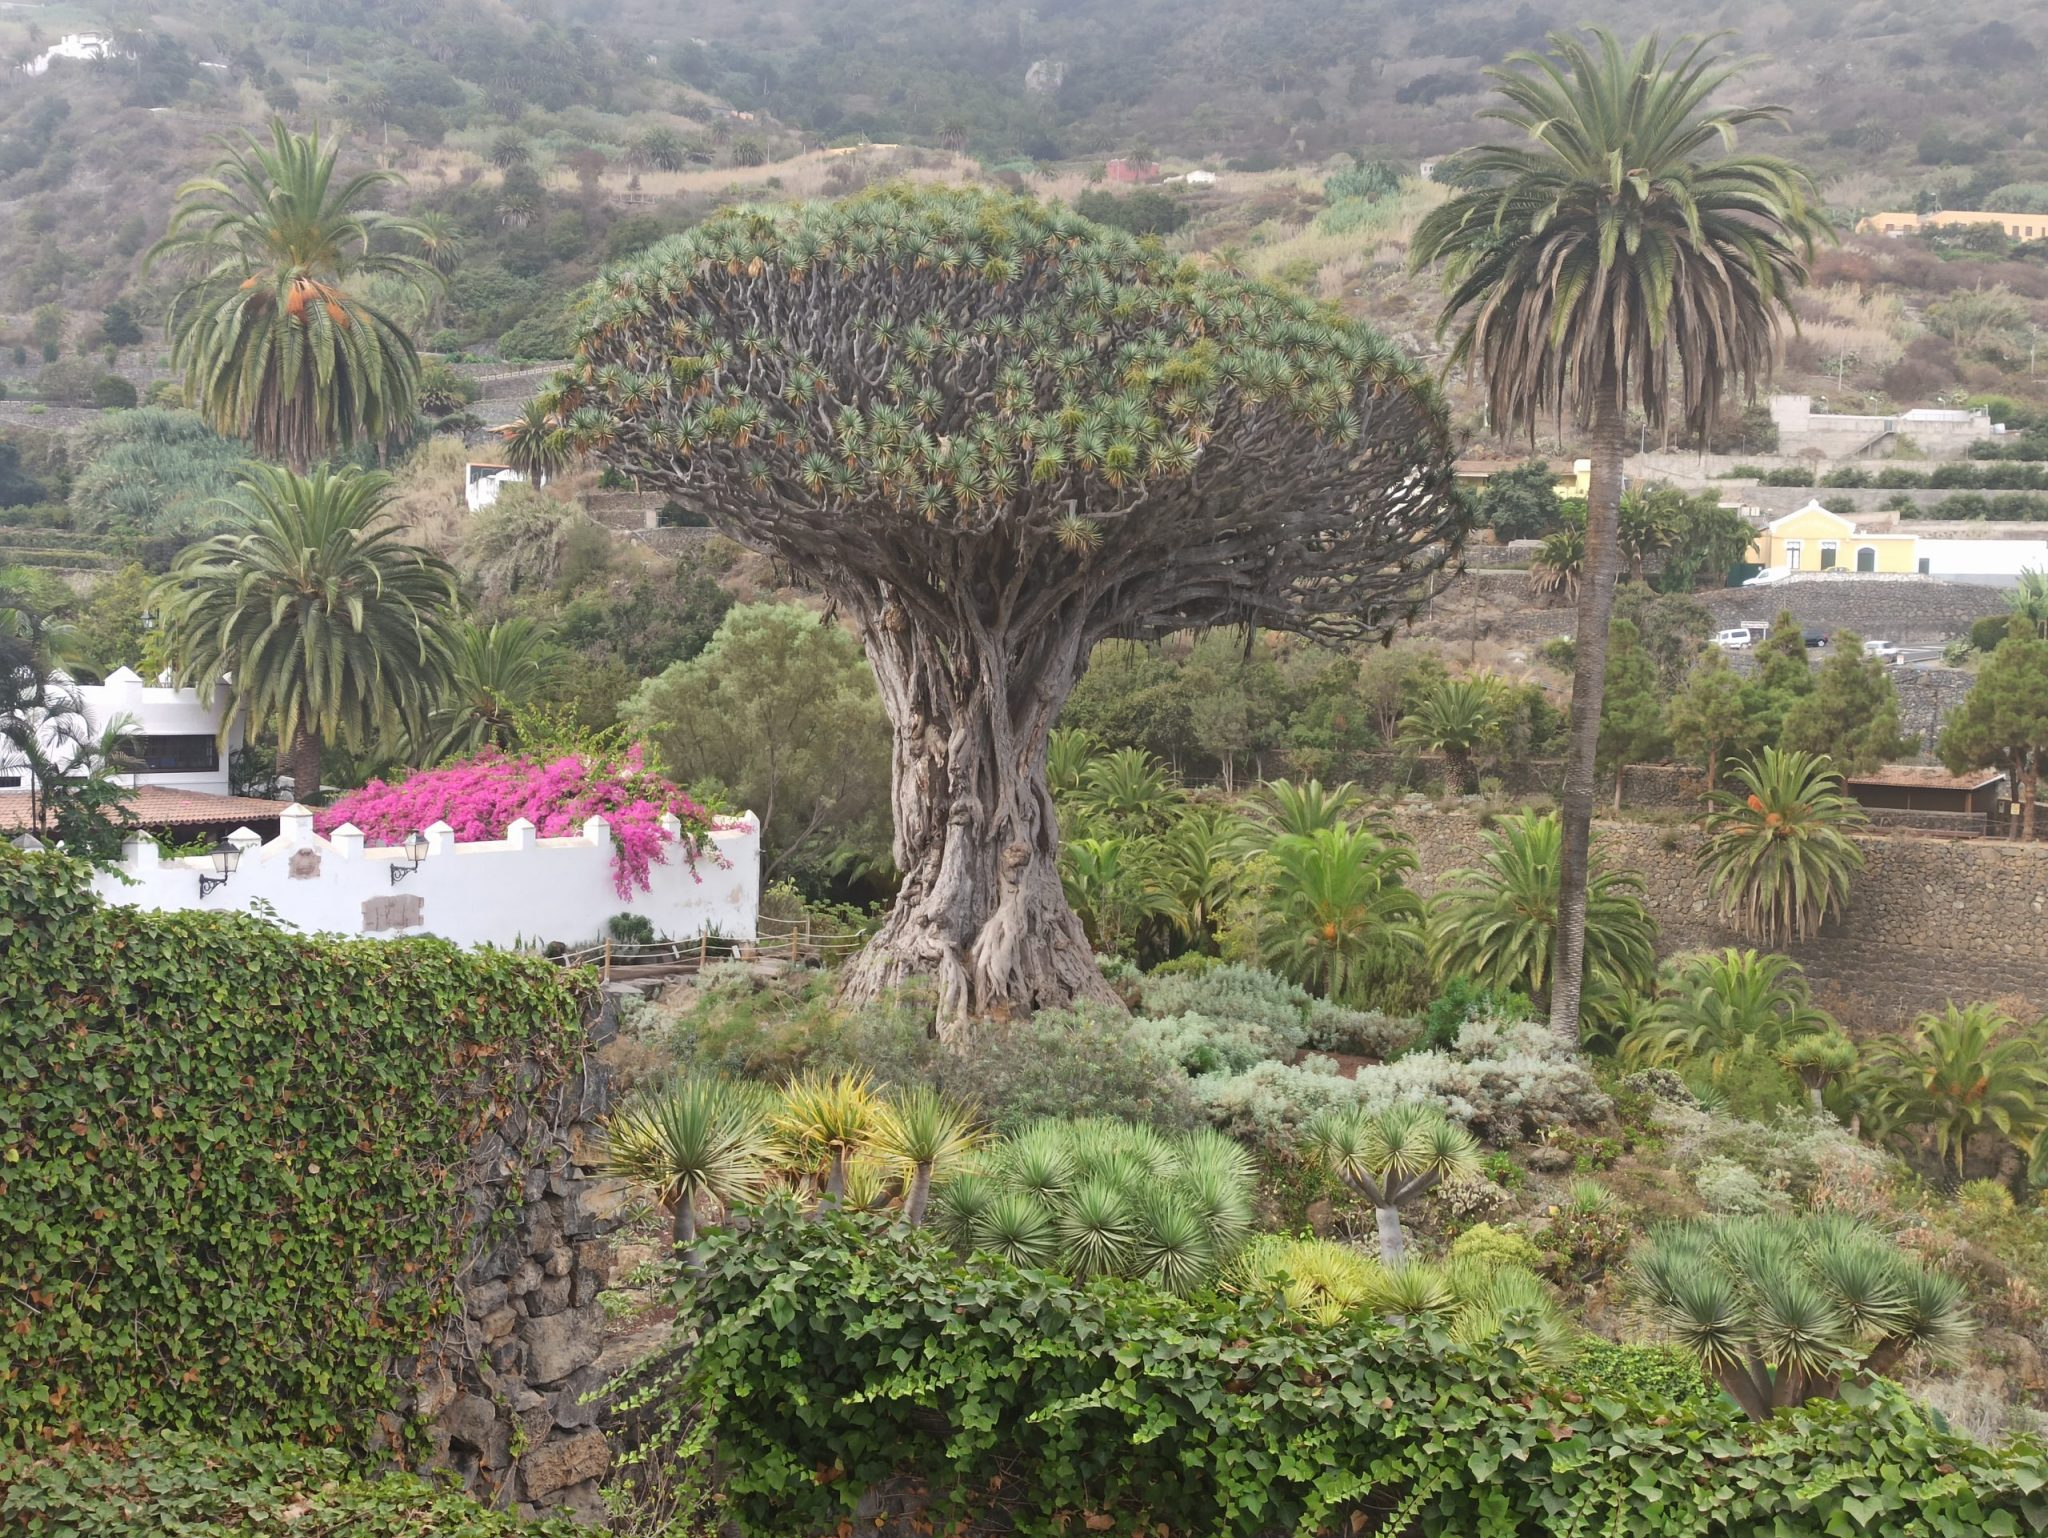 A photo of a large tree in Tenerife, which Amanda photographed after moving away from Madrid